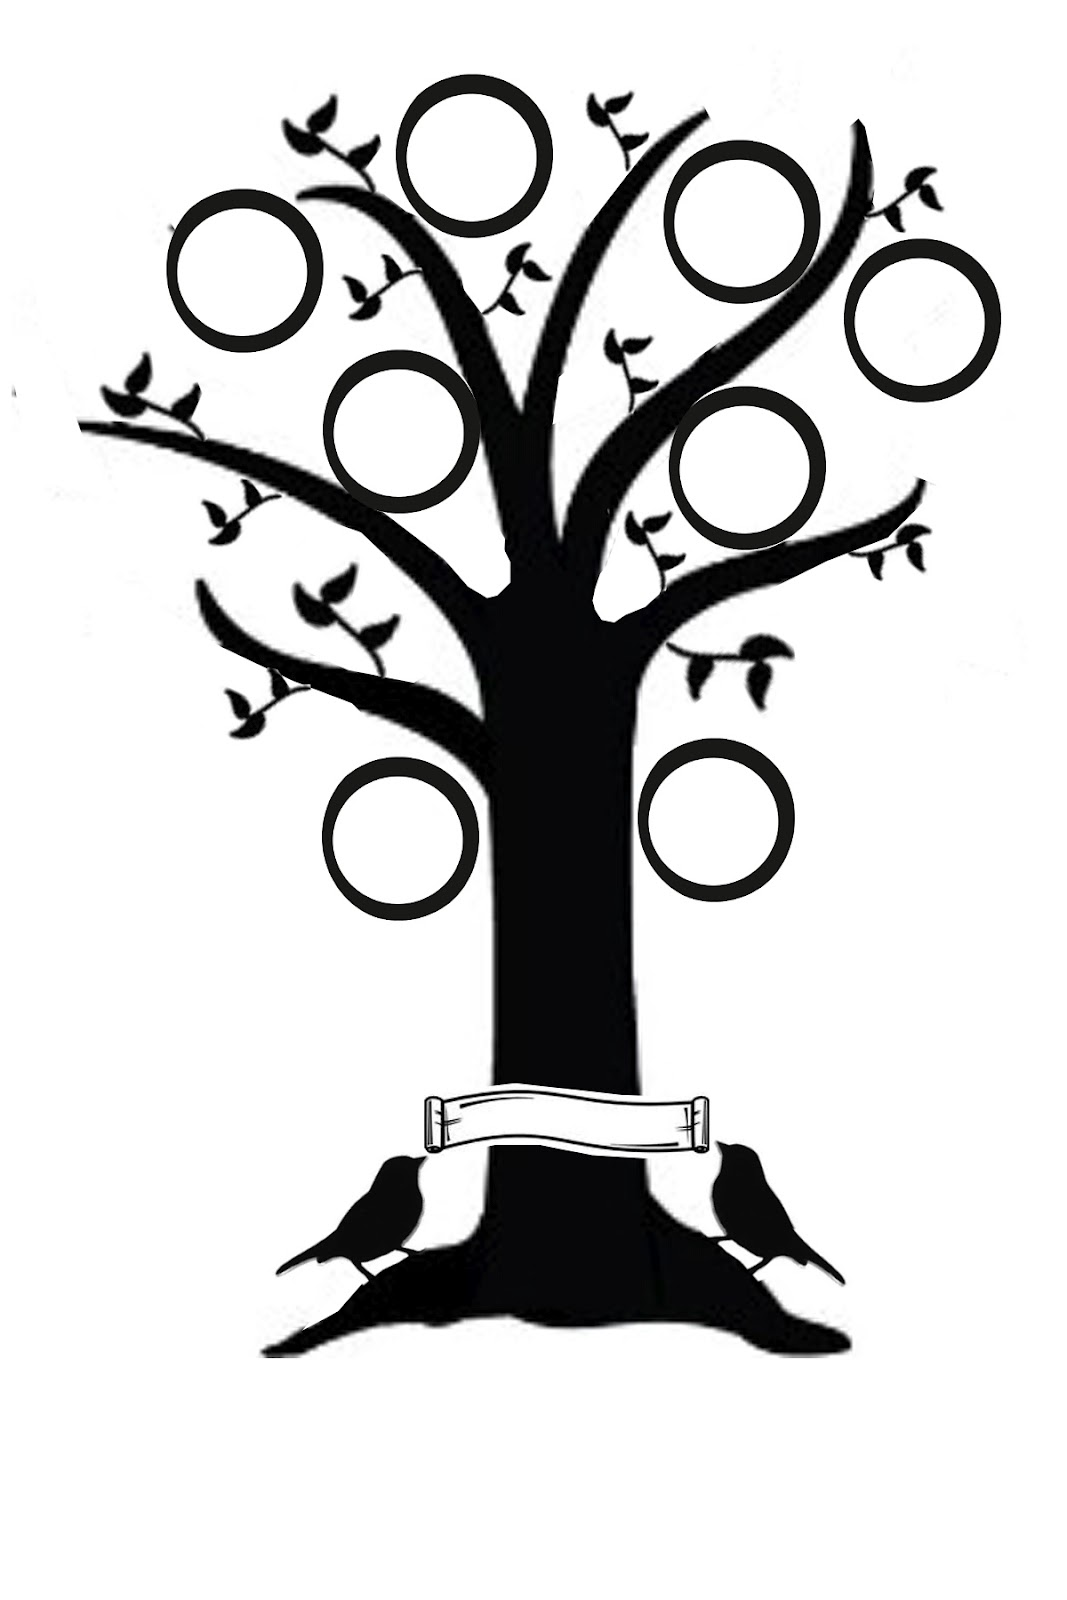 Simple Family Tree Drawings a Simple Family Tree Temaplate